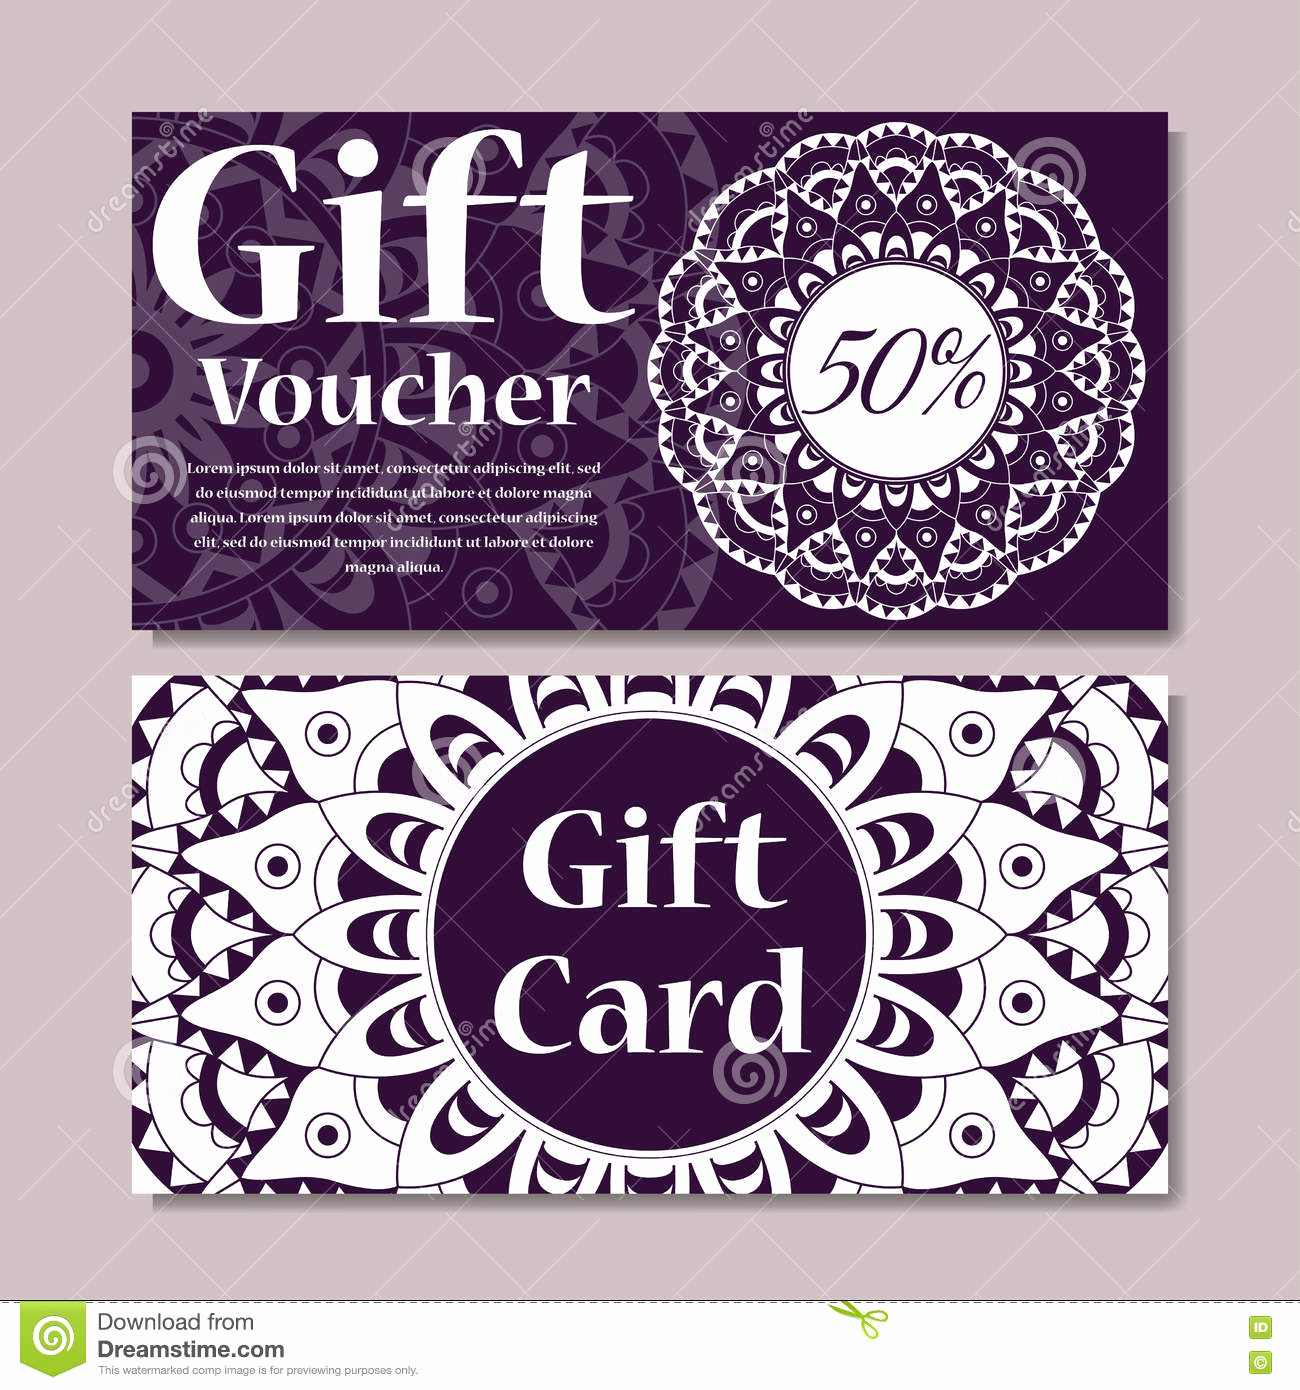 Magazine Subscription Gift Certificate Template Luxury Gift Voucher Template with Mandala Design Certificate for